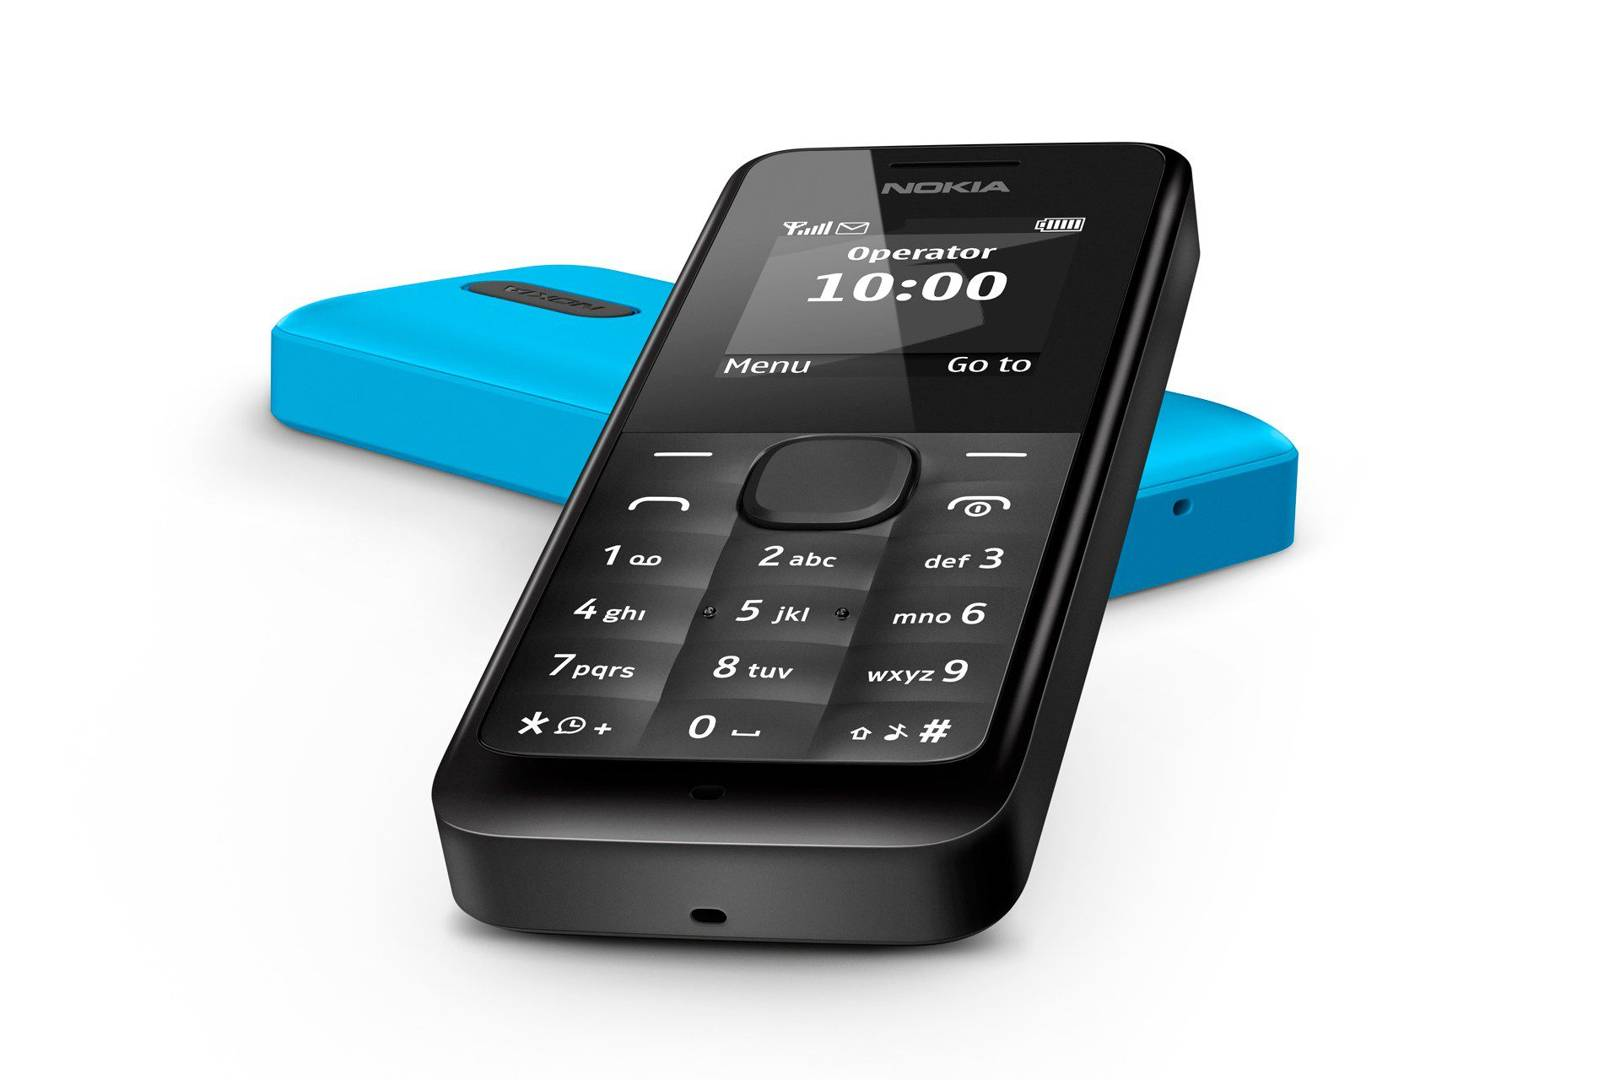 Nokia 105 review - Specs, features, best price and camera